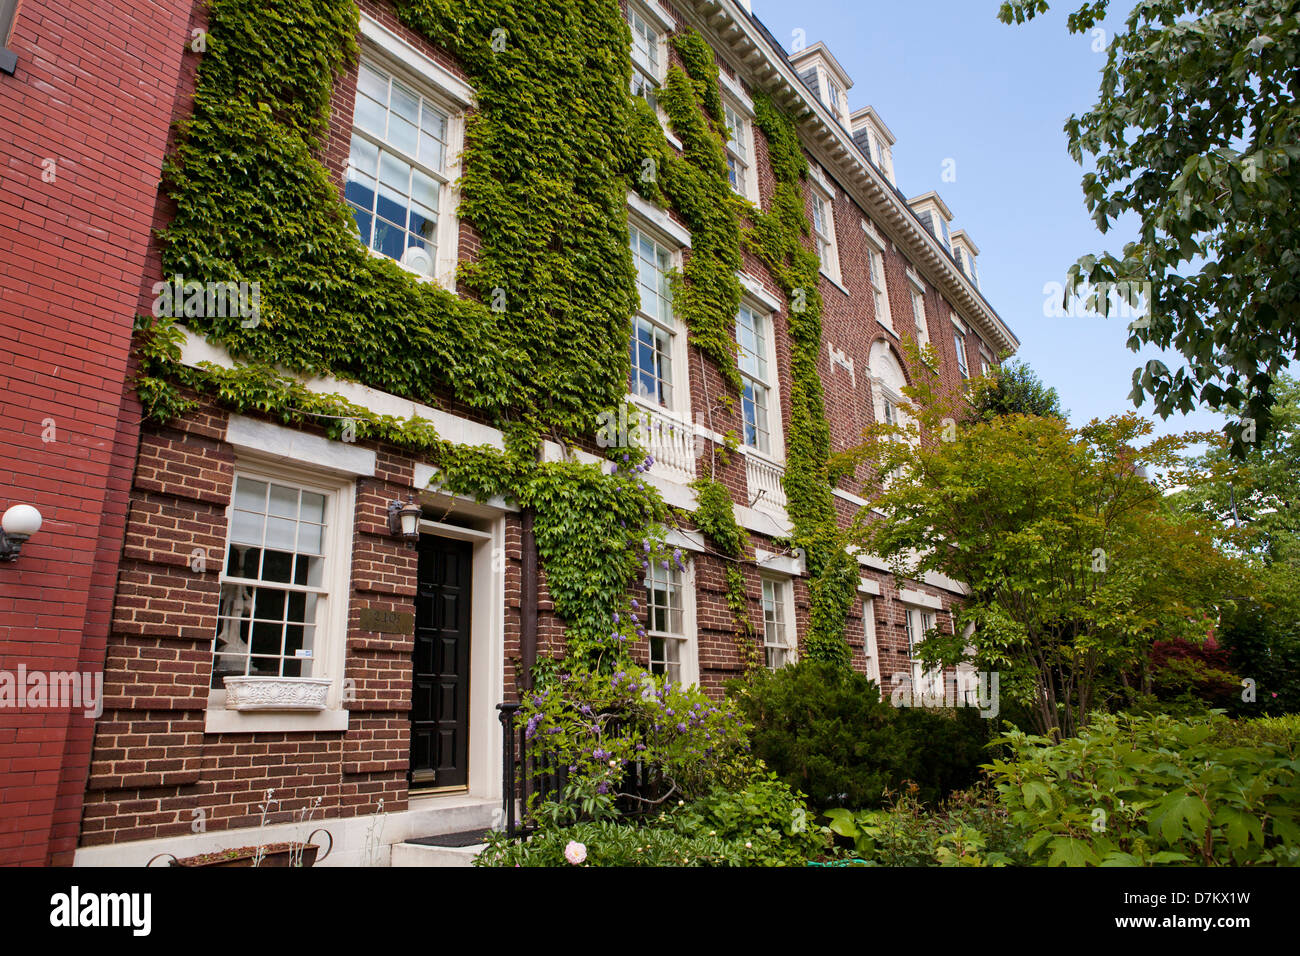 Front of brick home covered in ivy - Stock Image